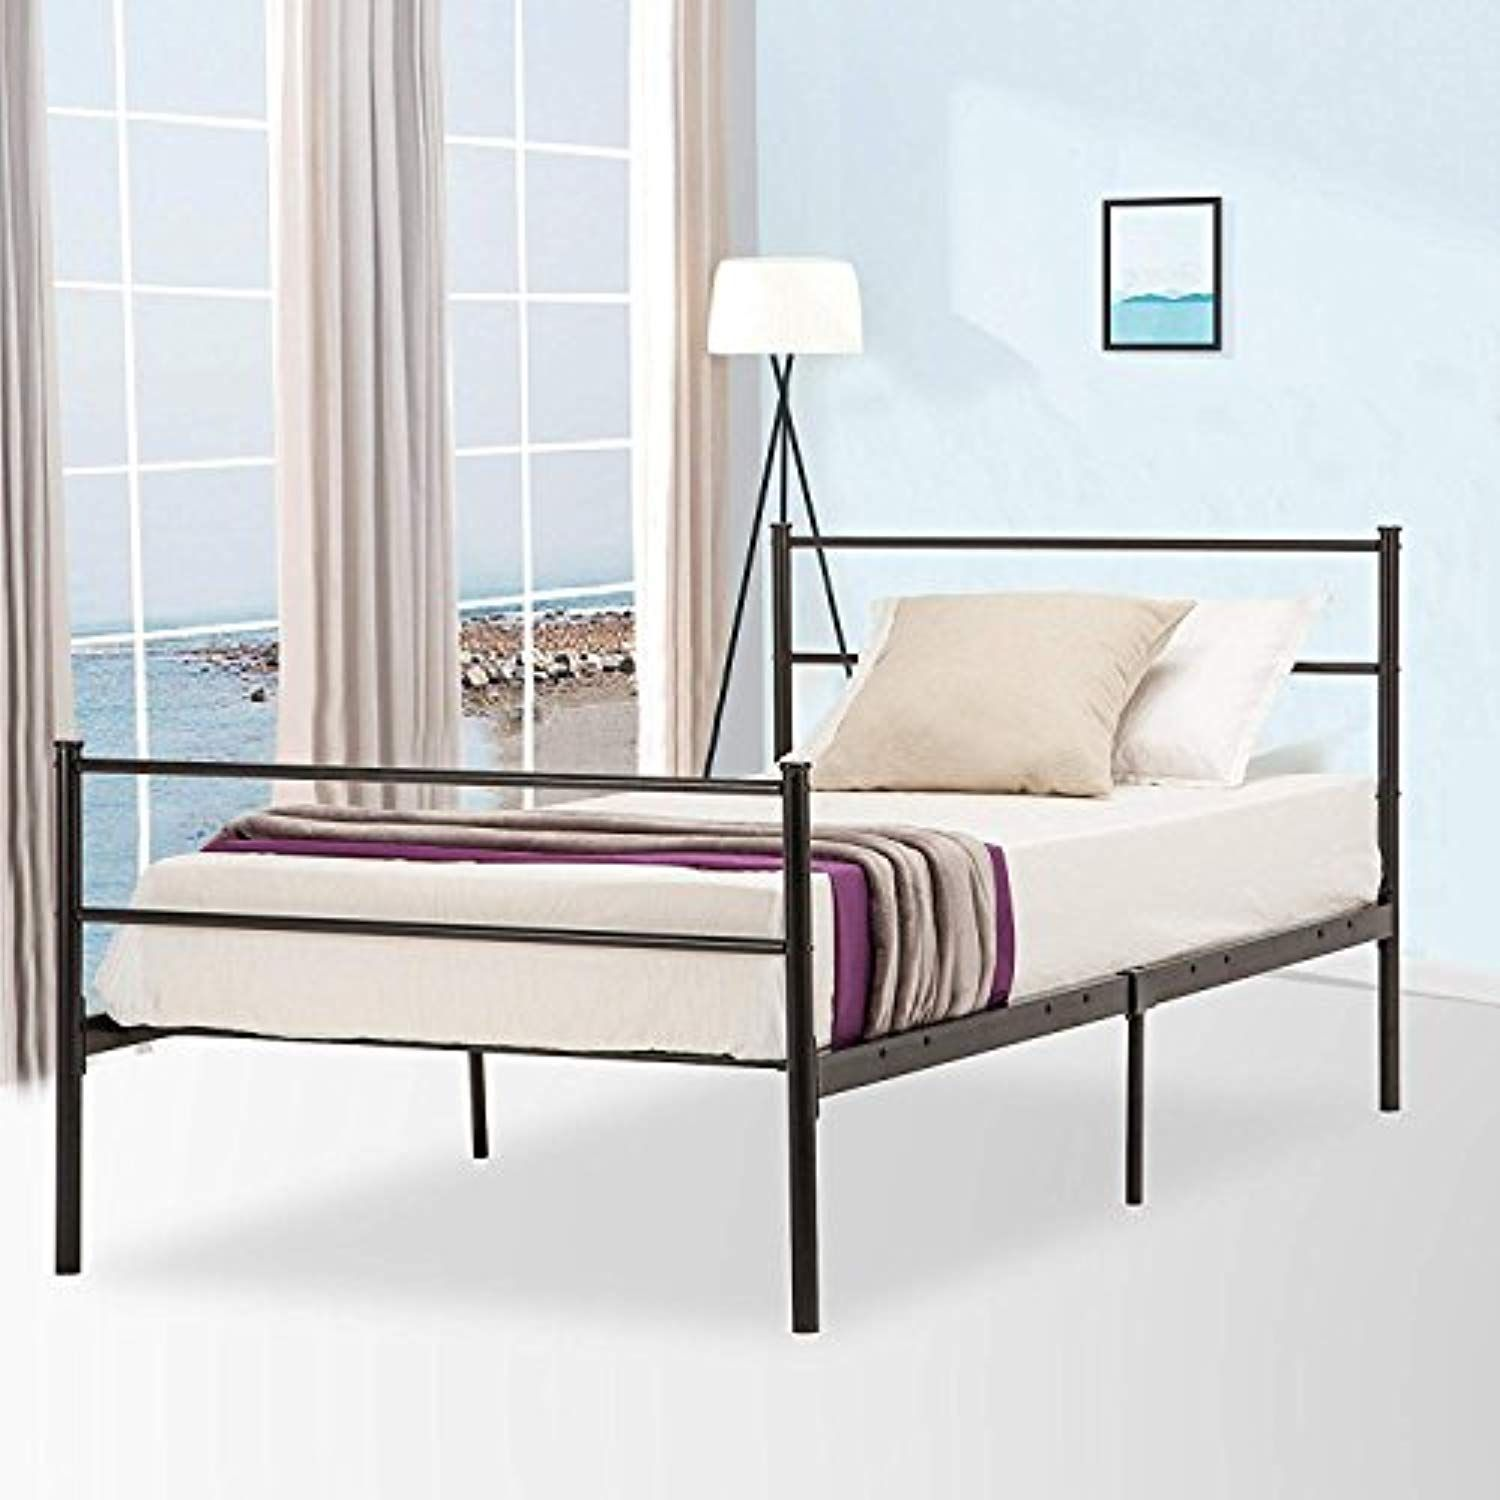 Mecor Reinforced Metal Bed Frame Twin Size Platform Bed With Metal